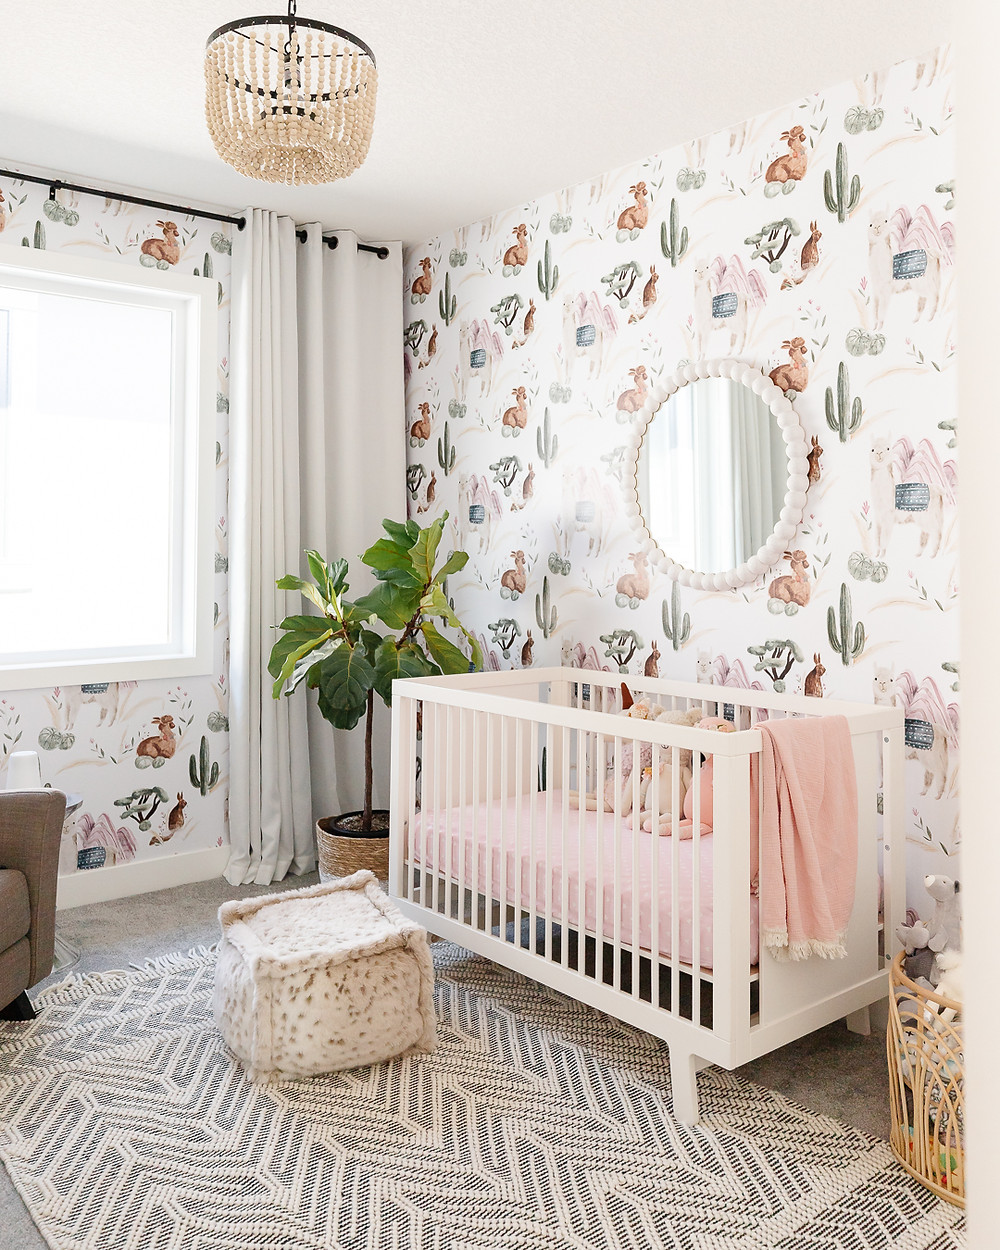 Nursery with wood bead chandielier white crib with white mirror llama accent wallpaper fiddle leaf fig in basket on floor patterned area rug woven basket with stuffed animals faux fur pouf and armchair